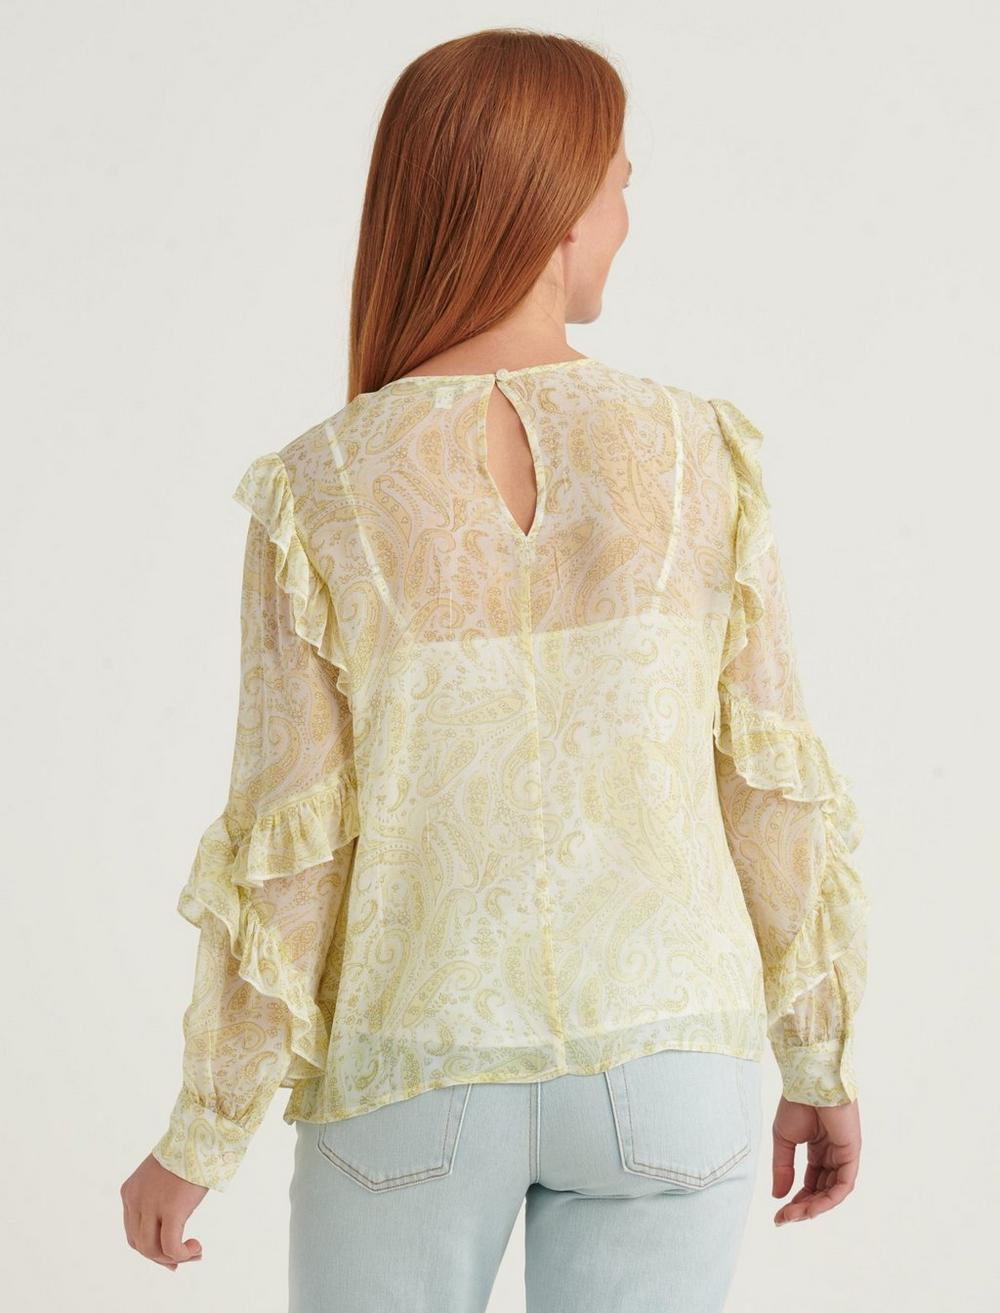 GEORGETTE RUFFLE BLOUSE TOP, image 4